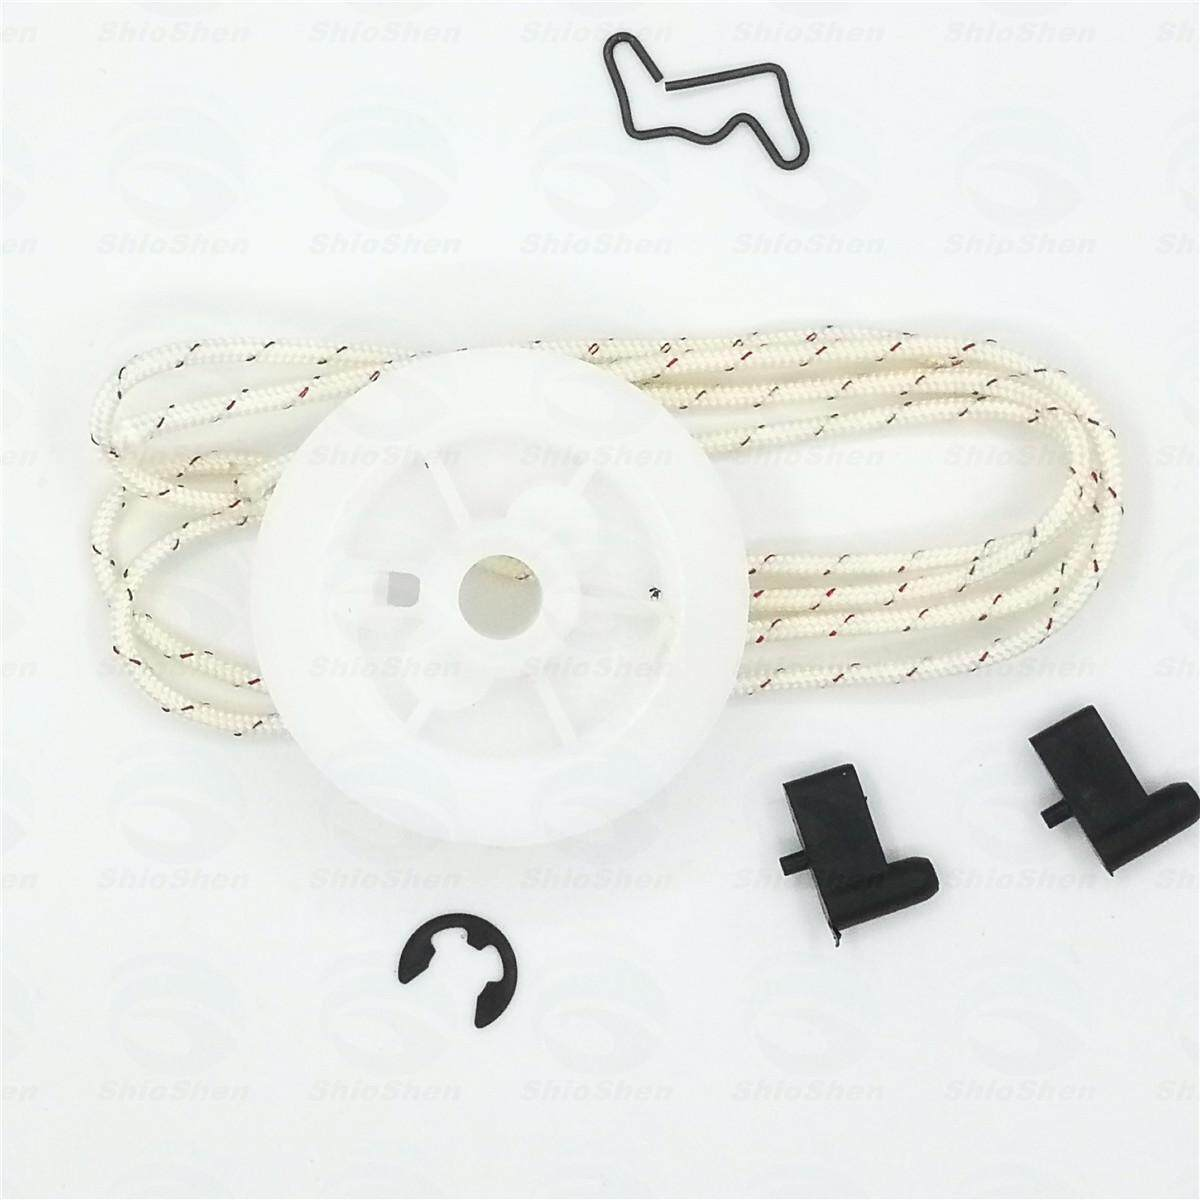 Starter Pulley Starter Rope Spring Washer Pawl E-clip Recoil